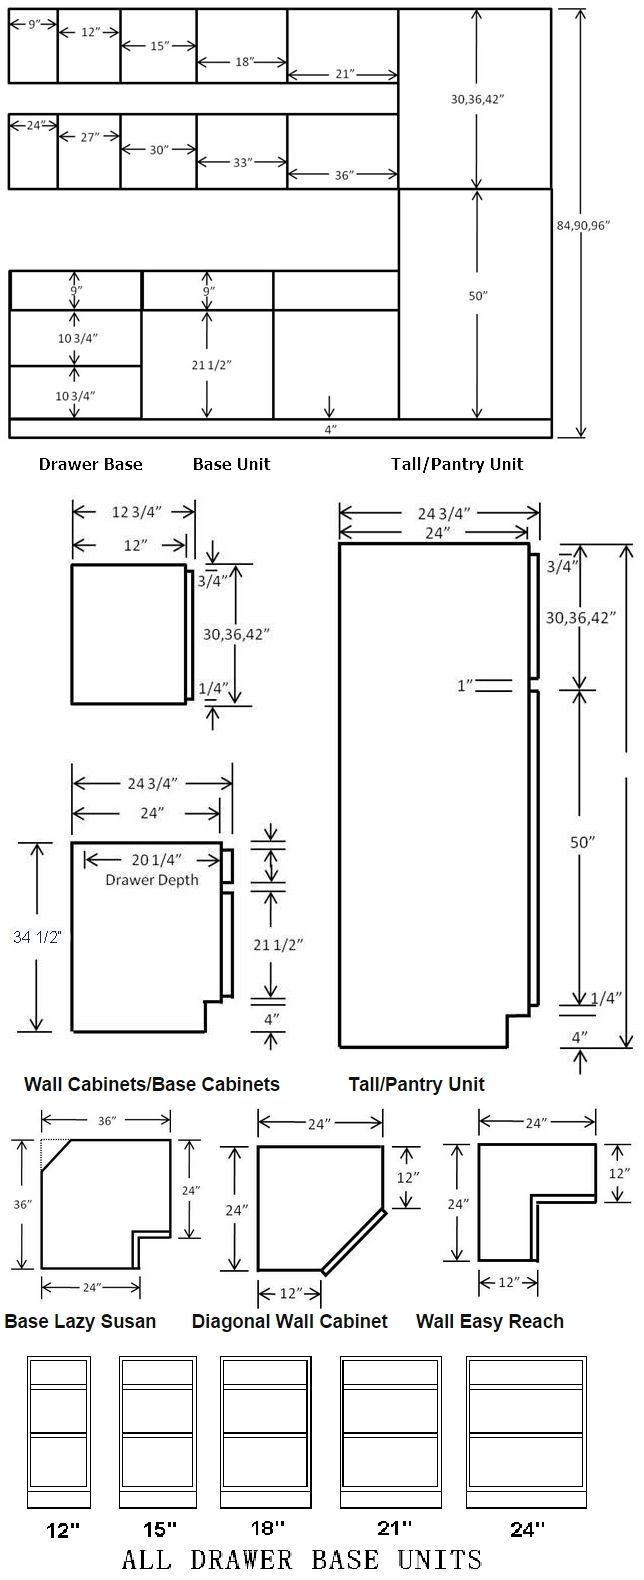 Dimensions of kitchen cabinets uk - Standard Cabinet Dimensions Available From Most Cabinet Suppliers Kitchen Cabinets That Sit On The Floor